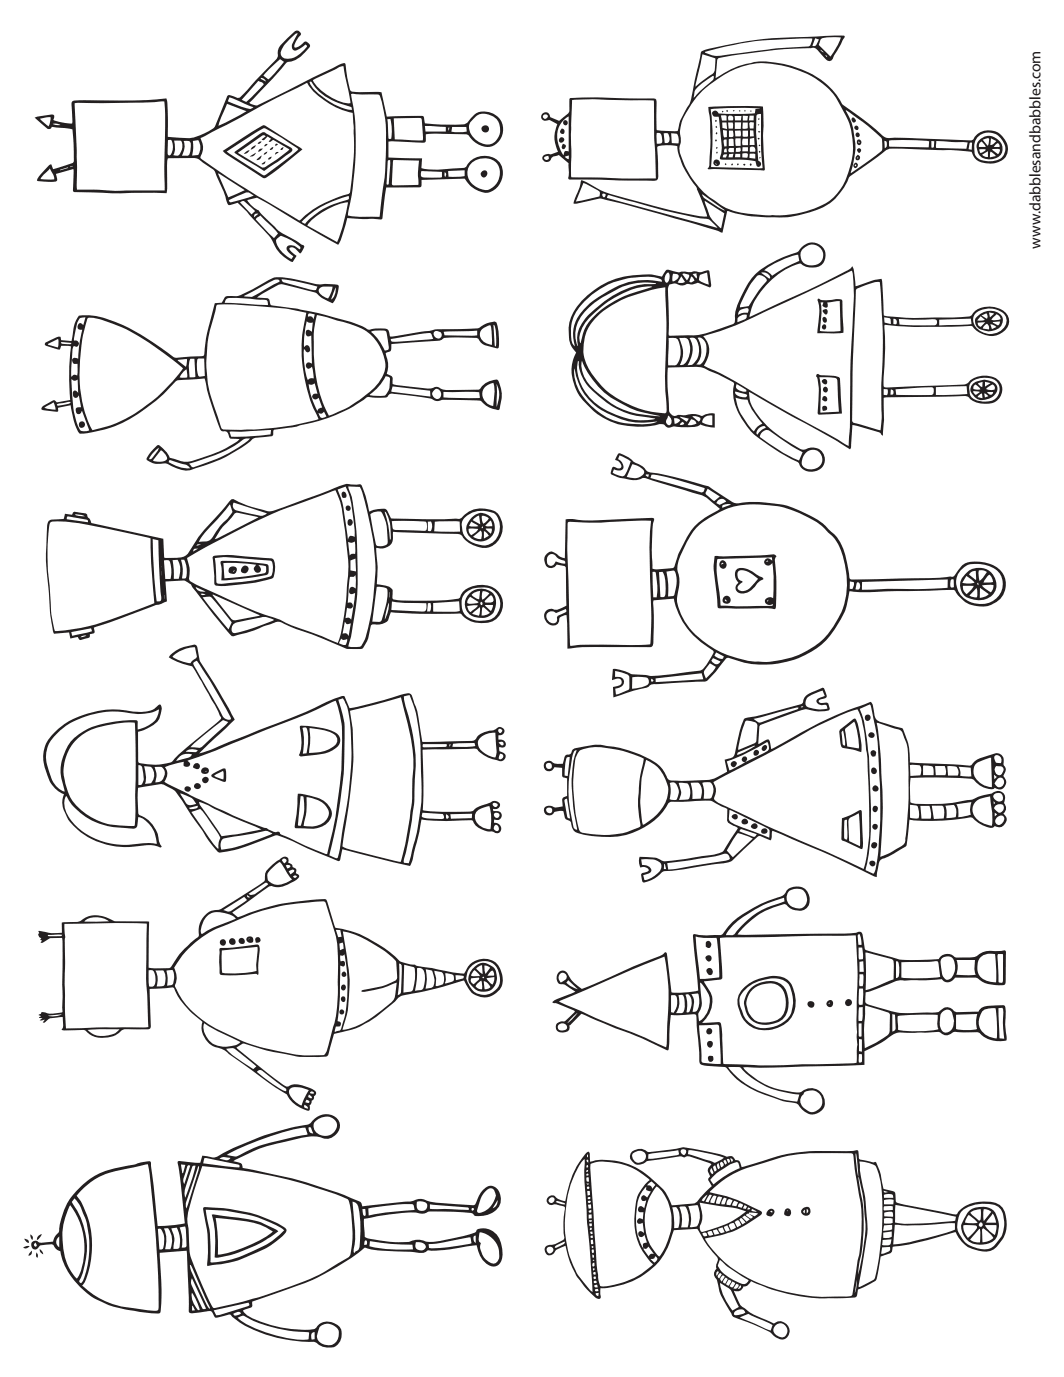 Printable Robot Coloring Page | ARTWORK & DESIGNS | Pinterest | Free ...